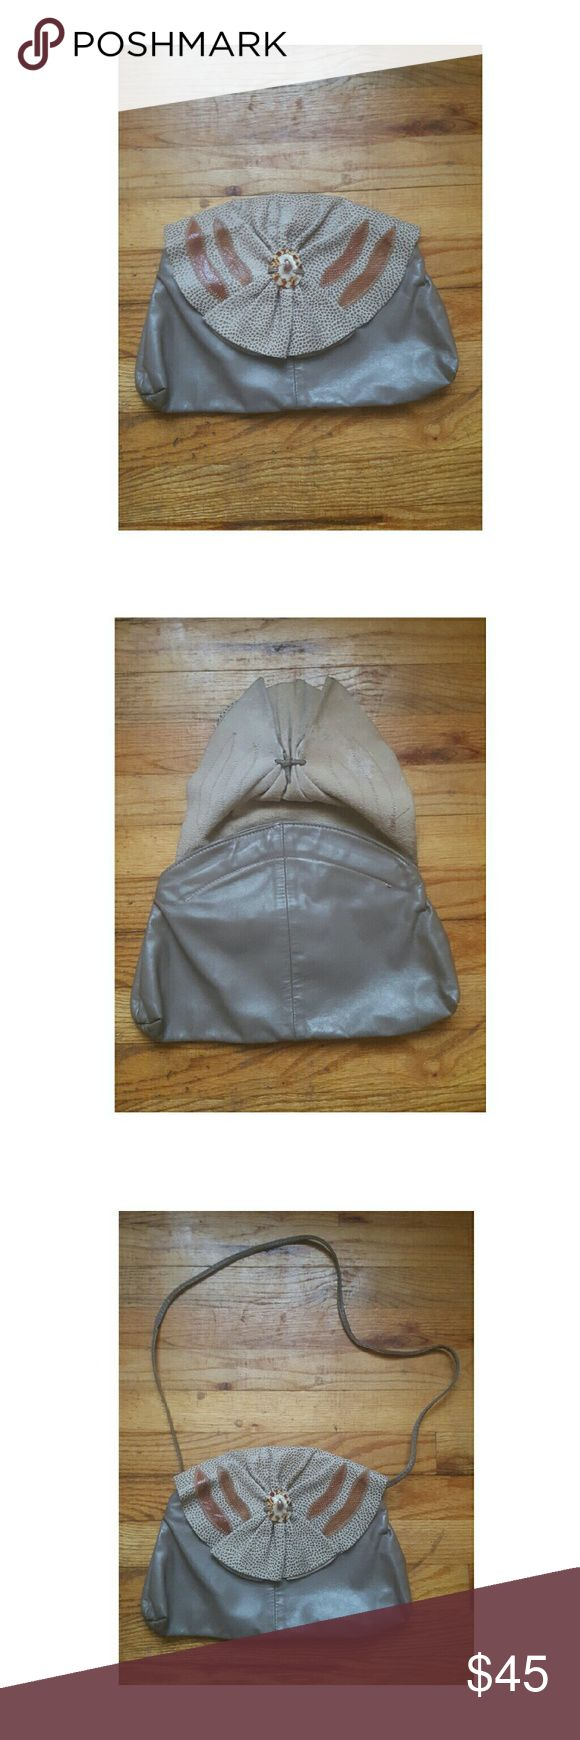 Vintage Leather/Suede Taupe Clutch/Purse -Vintage taupe color leather and suede clutch or shoulder strap bag  -Has a real seashell on front flap -Great for most occasions  -Pair with high-waisted jeans and a vintage tee-shirt for a more cool causal style. Bags Clutches & Wristlets